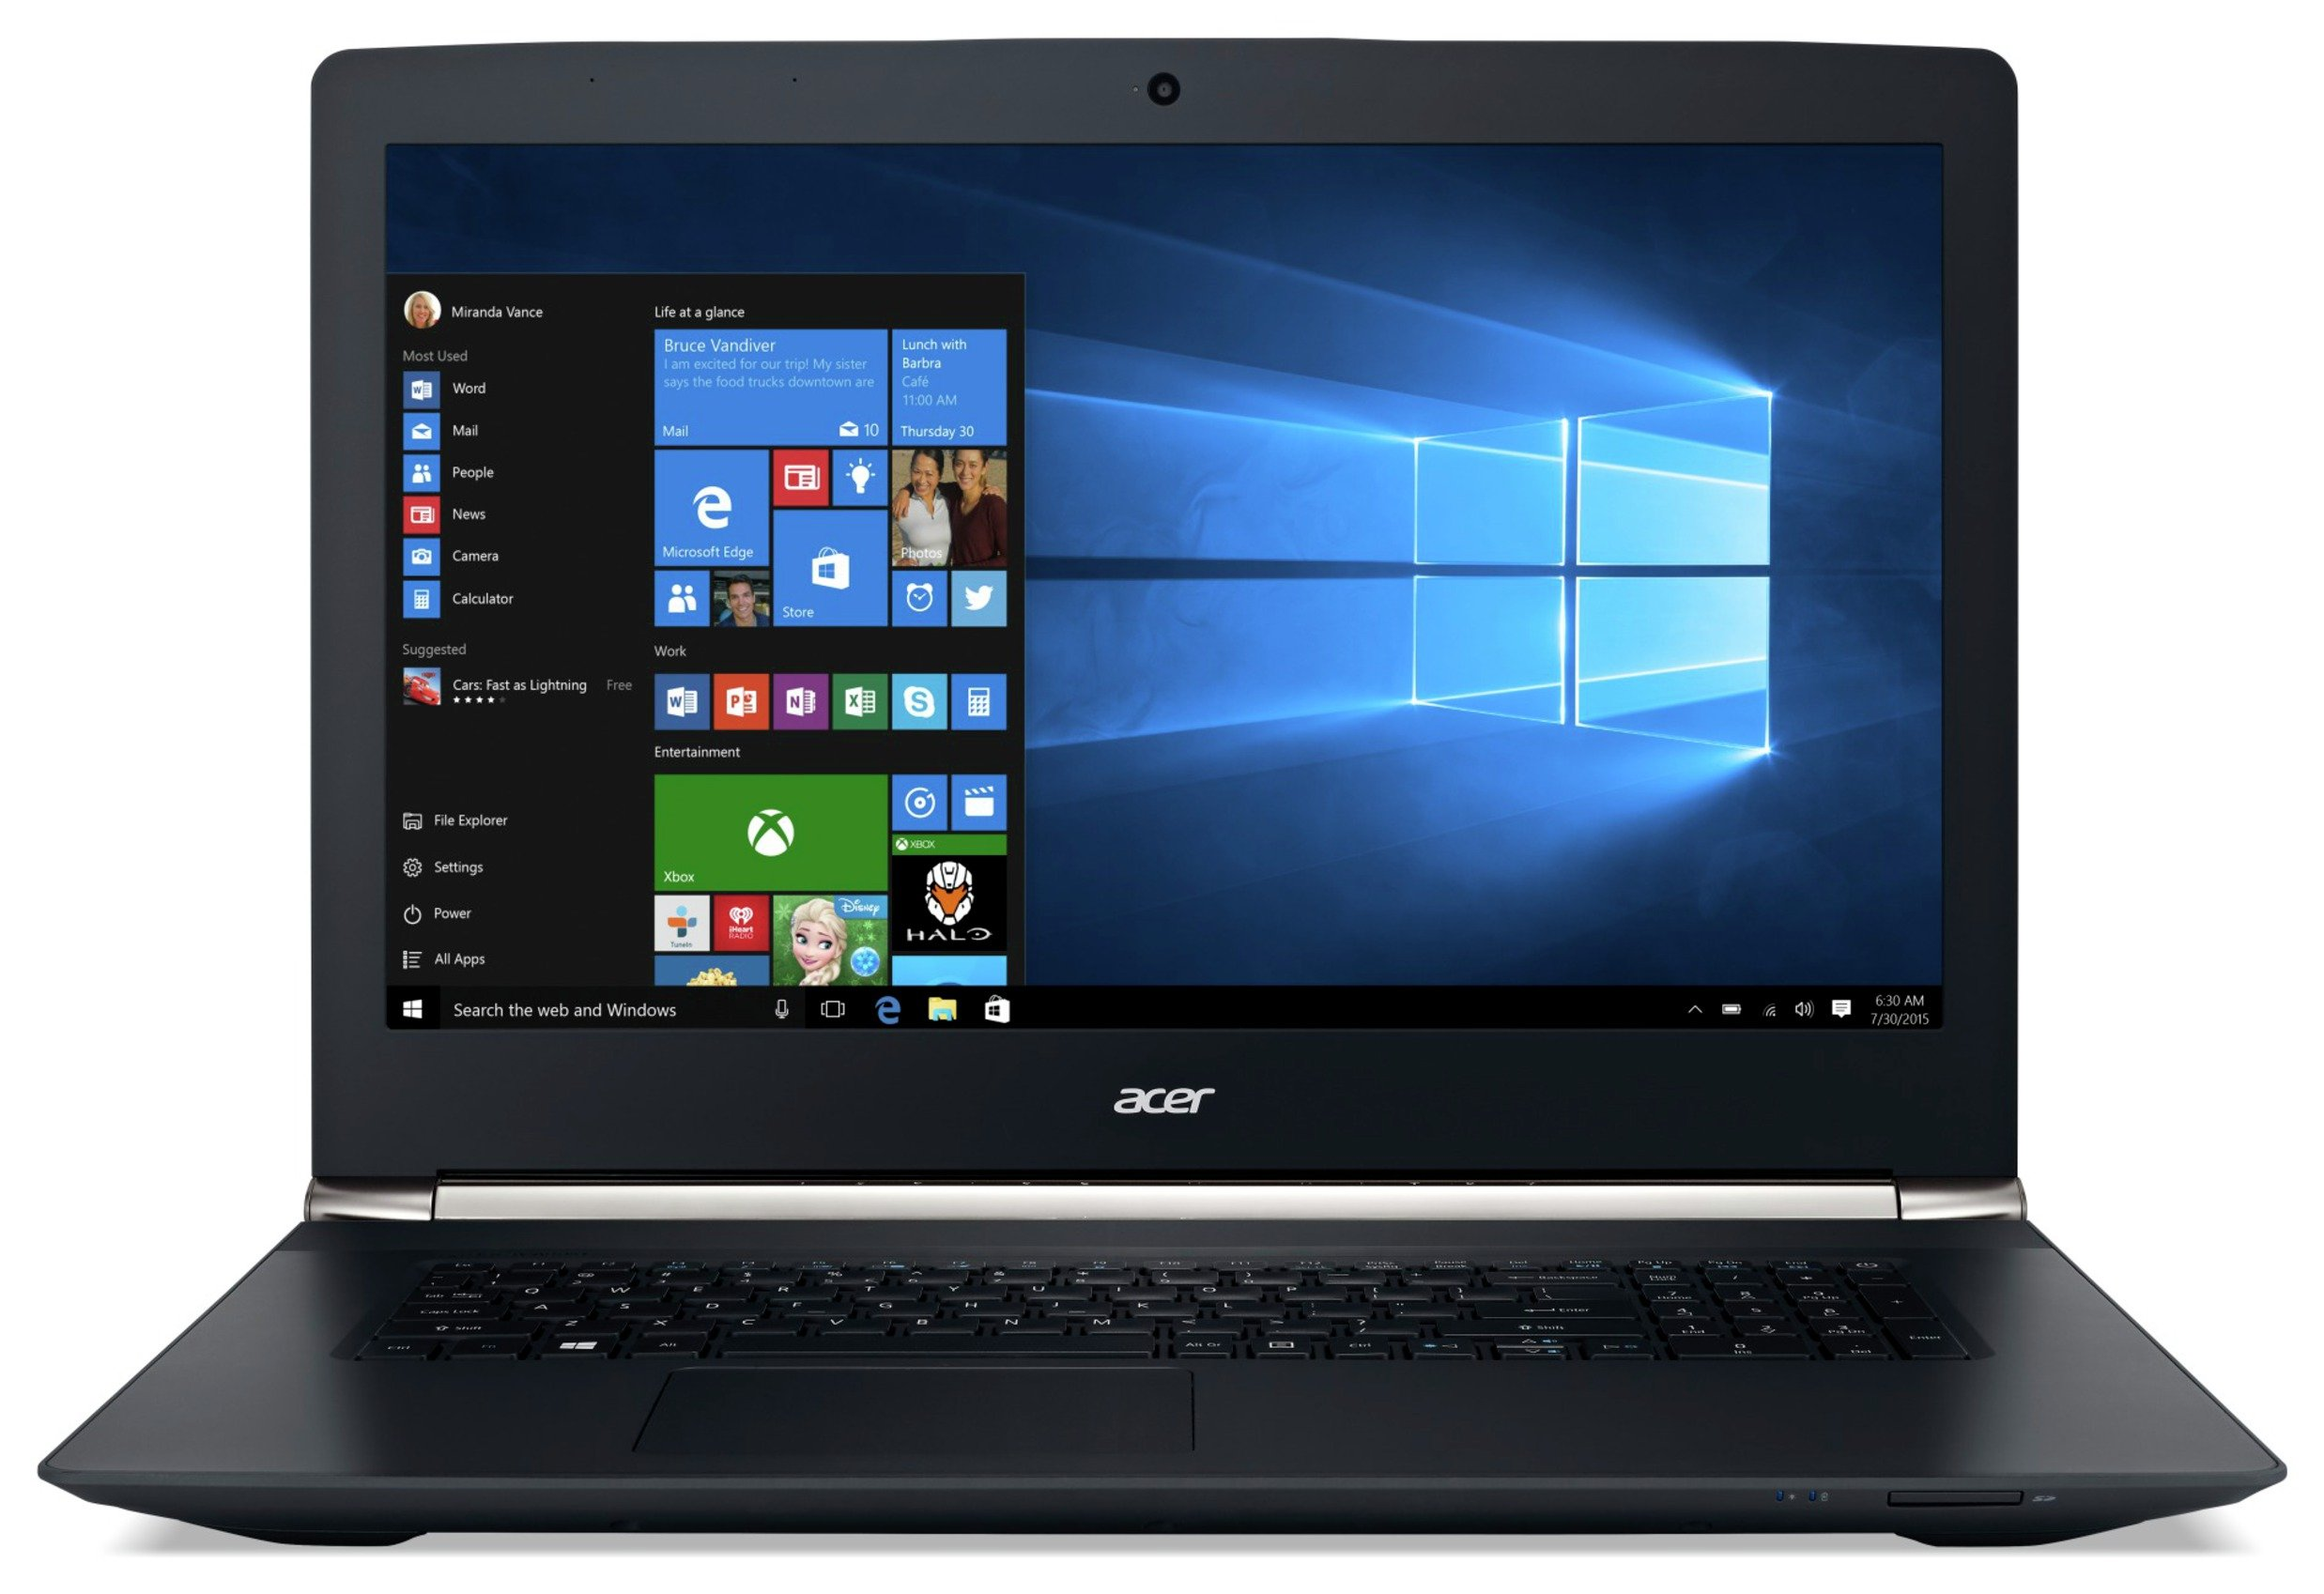 Cutting edge graphics meets lightning fast speed. Driven by a powerful Intel Core i7 processor and 16GB of RAM, and featuring NVIDIA GeForce GTX 1050 graphics, a F...